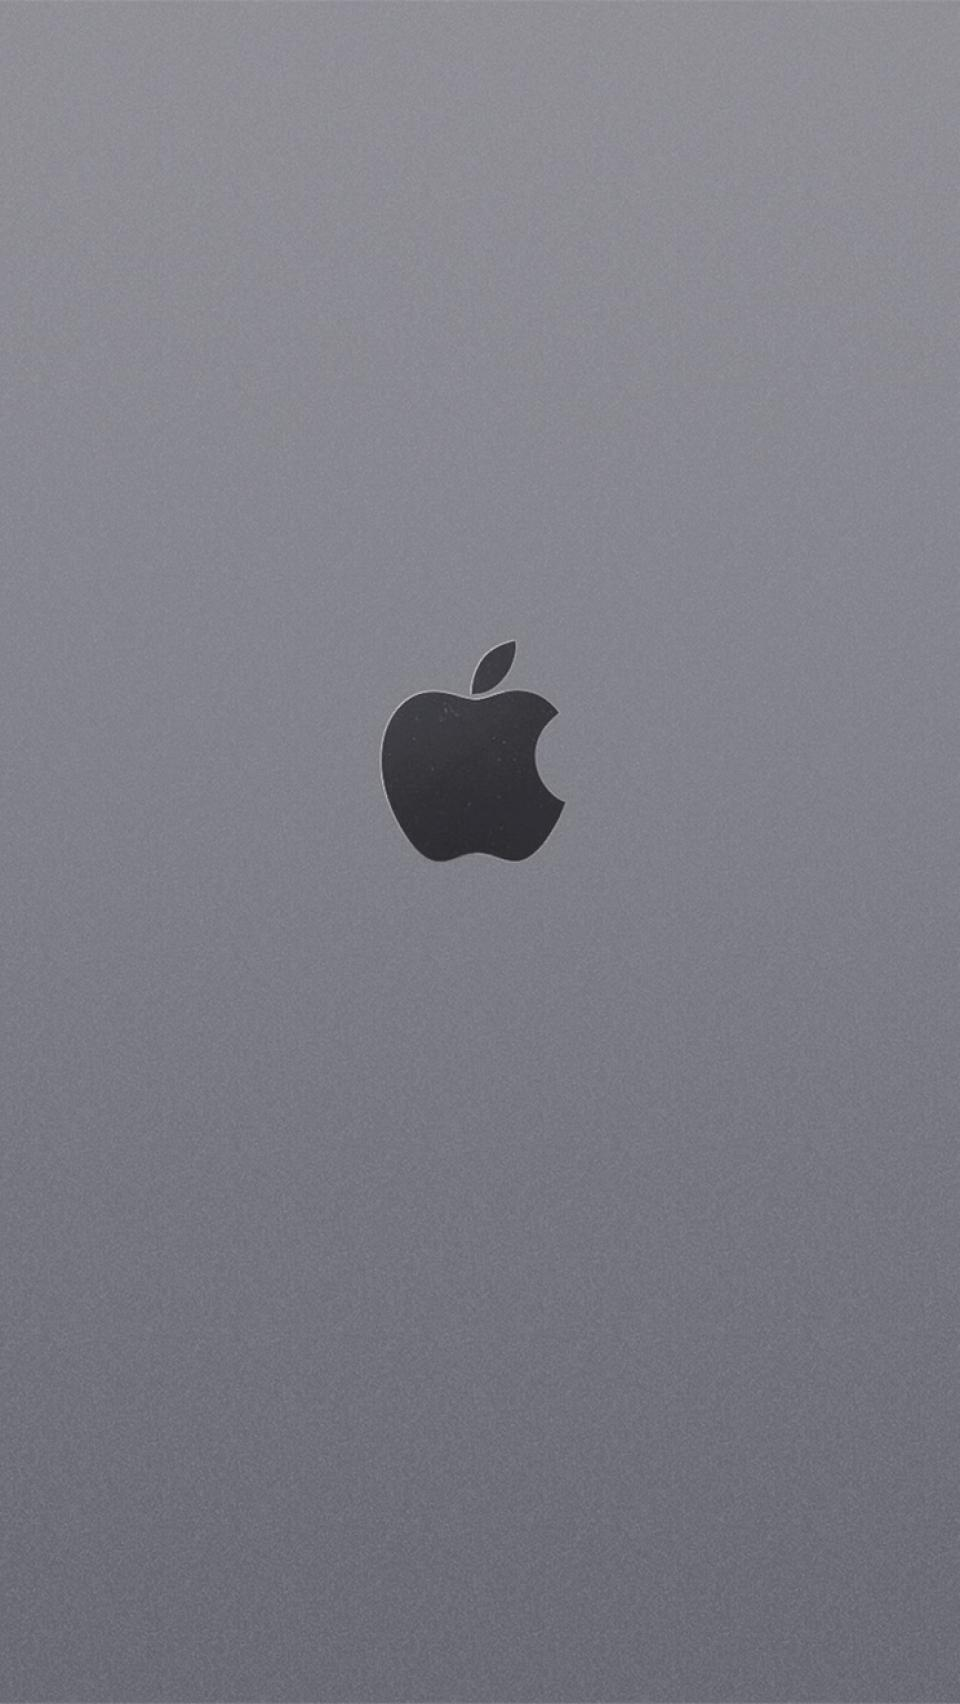 iphone 6 retina wallpaper